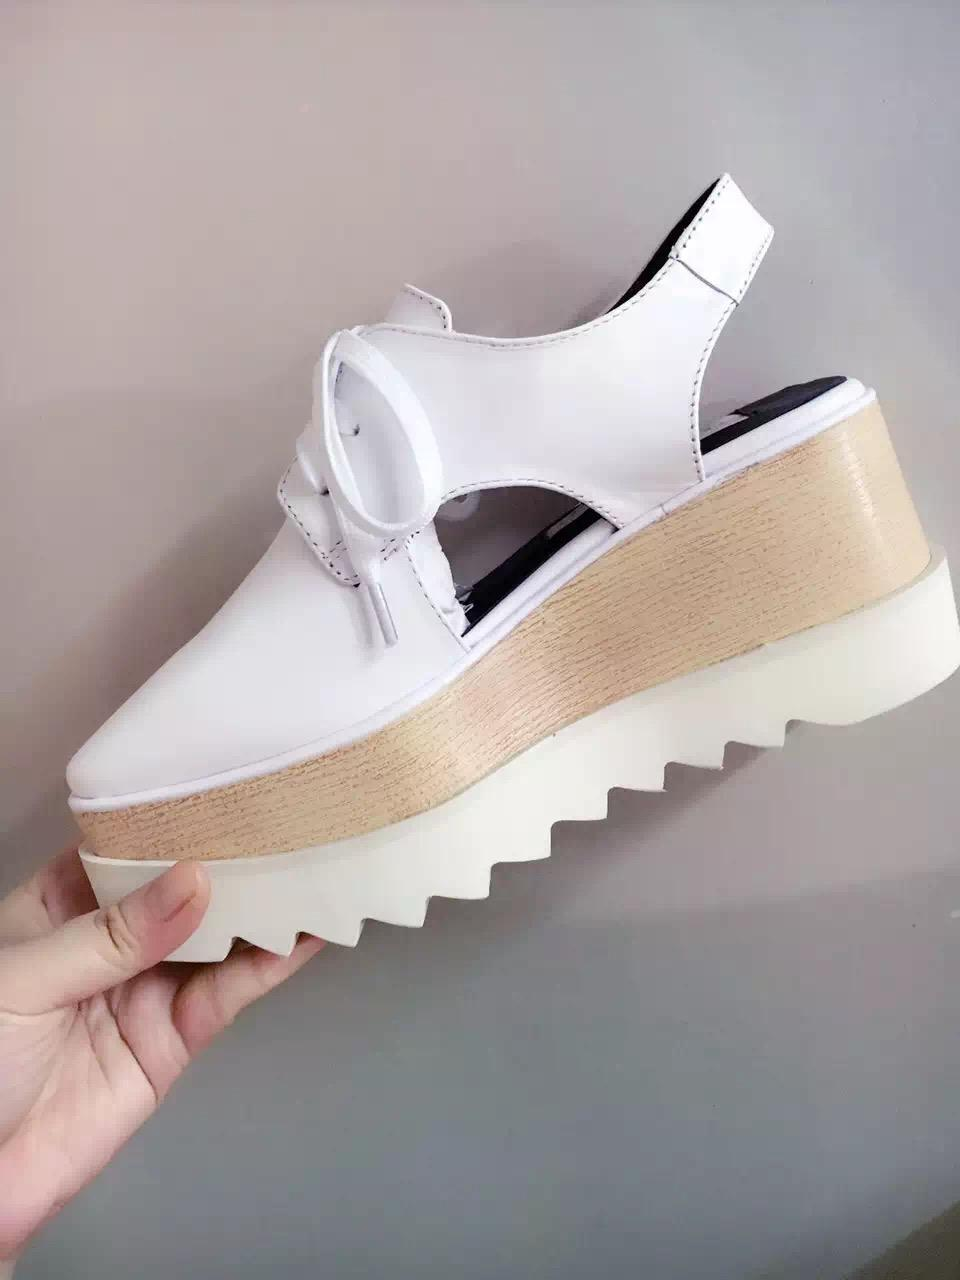 6342d4e6112e Stella Mccartney Sandals White Leather Wedge Platform Elyse Nina Shoes Shoes  For Sale Womens Loafers From Luischen